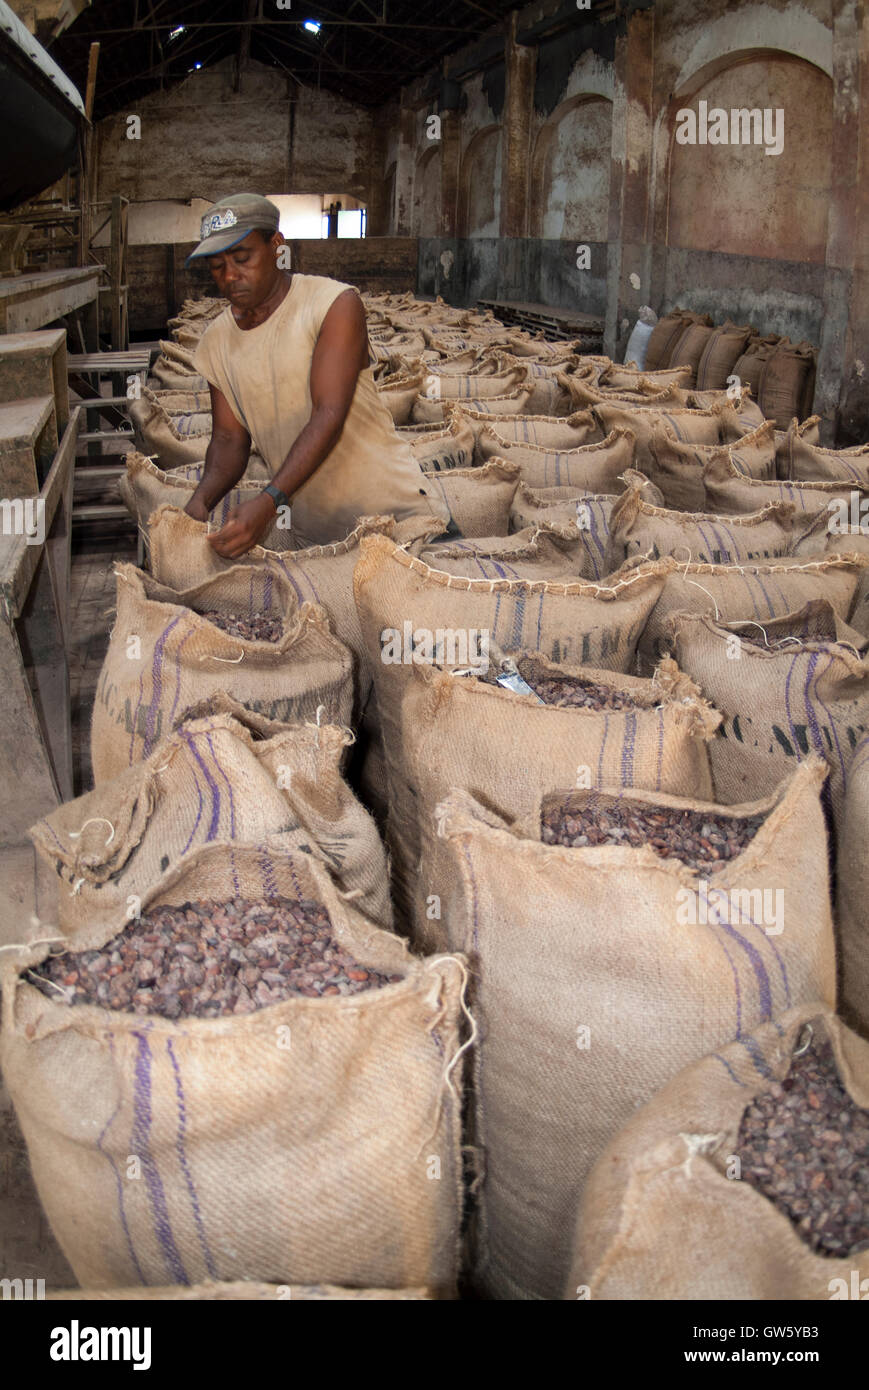 Cocoa beans packed in sacks after roasting, ready to be shipped. São Tomé e Príncipe Stock Photo